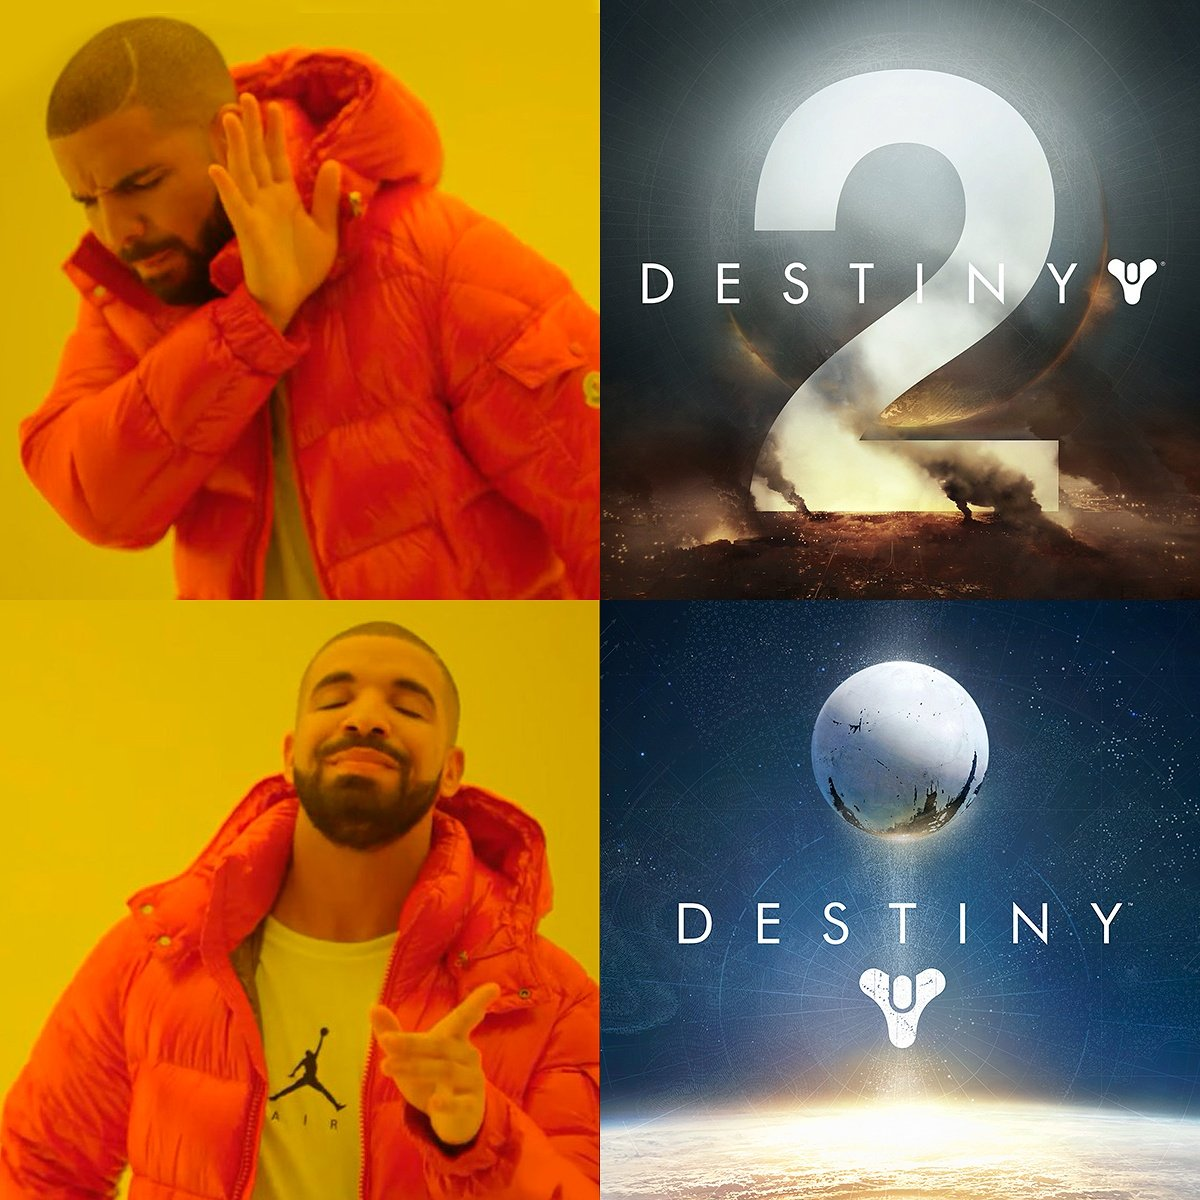 Anyone feel me? @SeleneHerondale #destiny #destiny2  #ps4 #Playstation #twitch #twitchaffiliate<br>http://pic.twitter.com/Ognhec5qVw